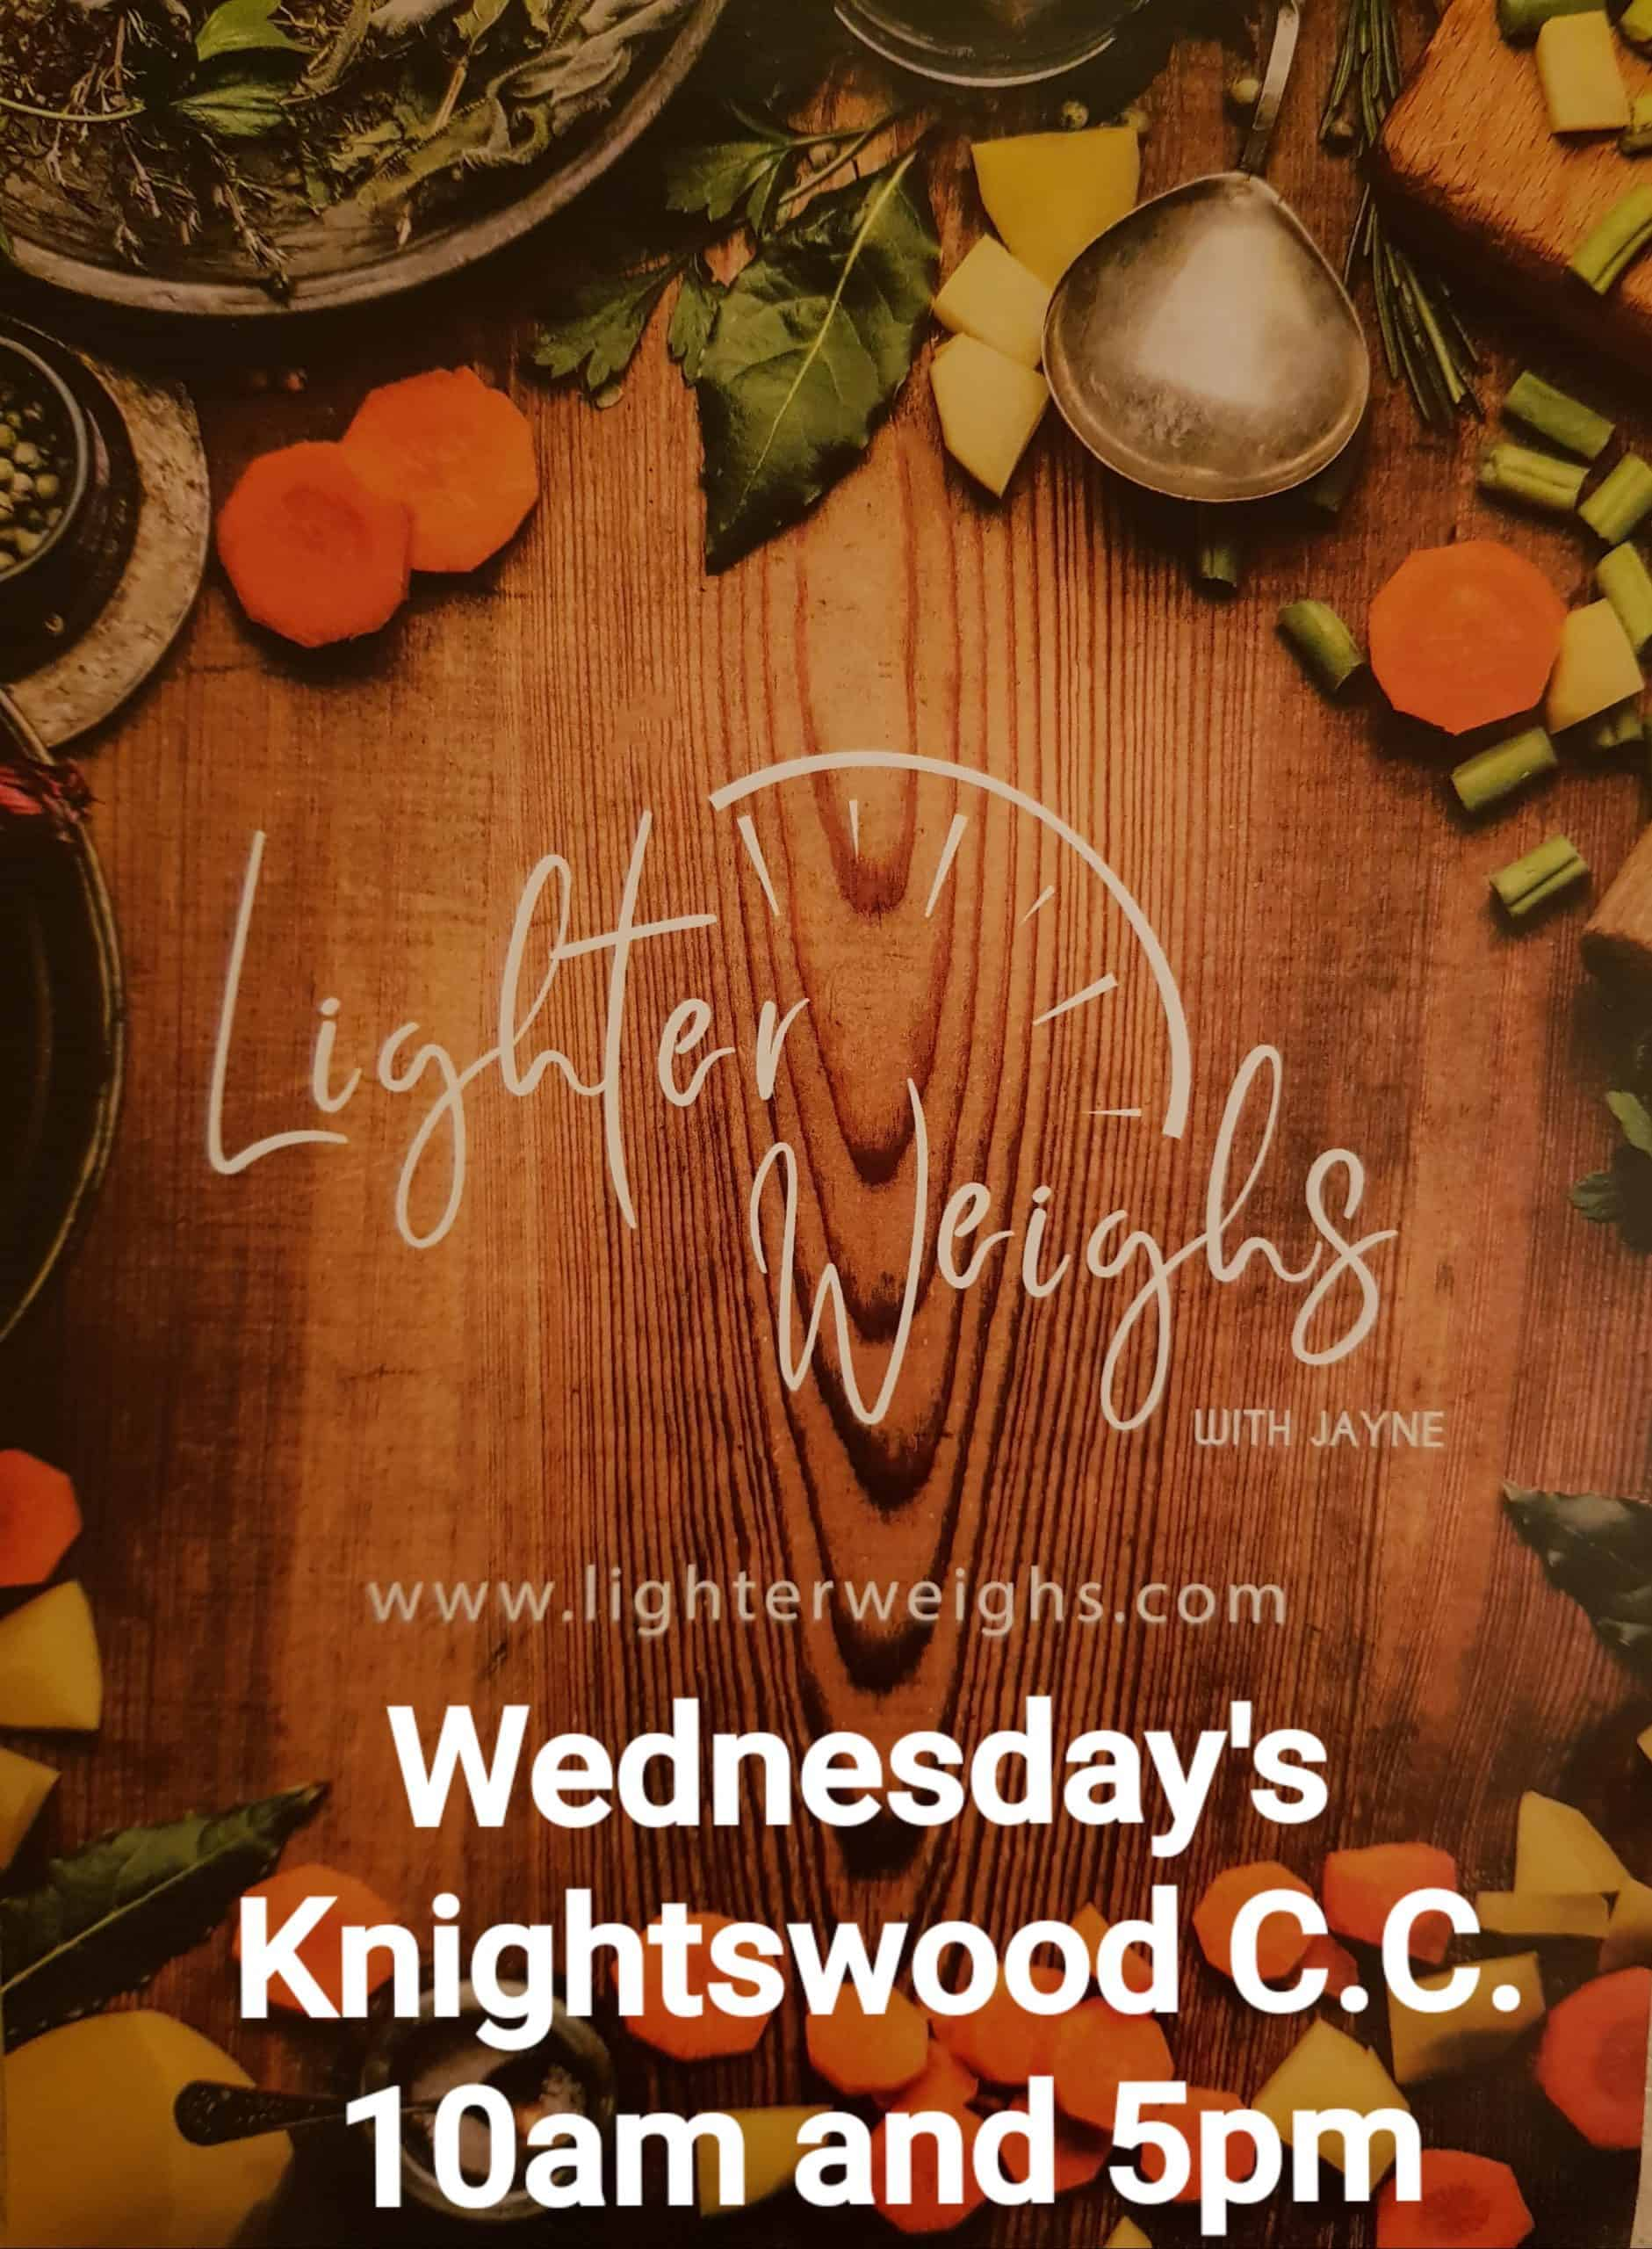 Lighter weighs with Jayne slimming club Knightswood